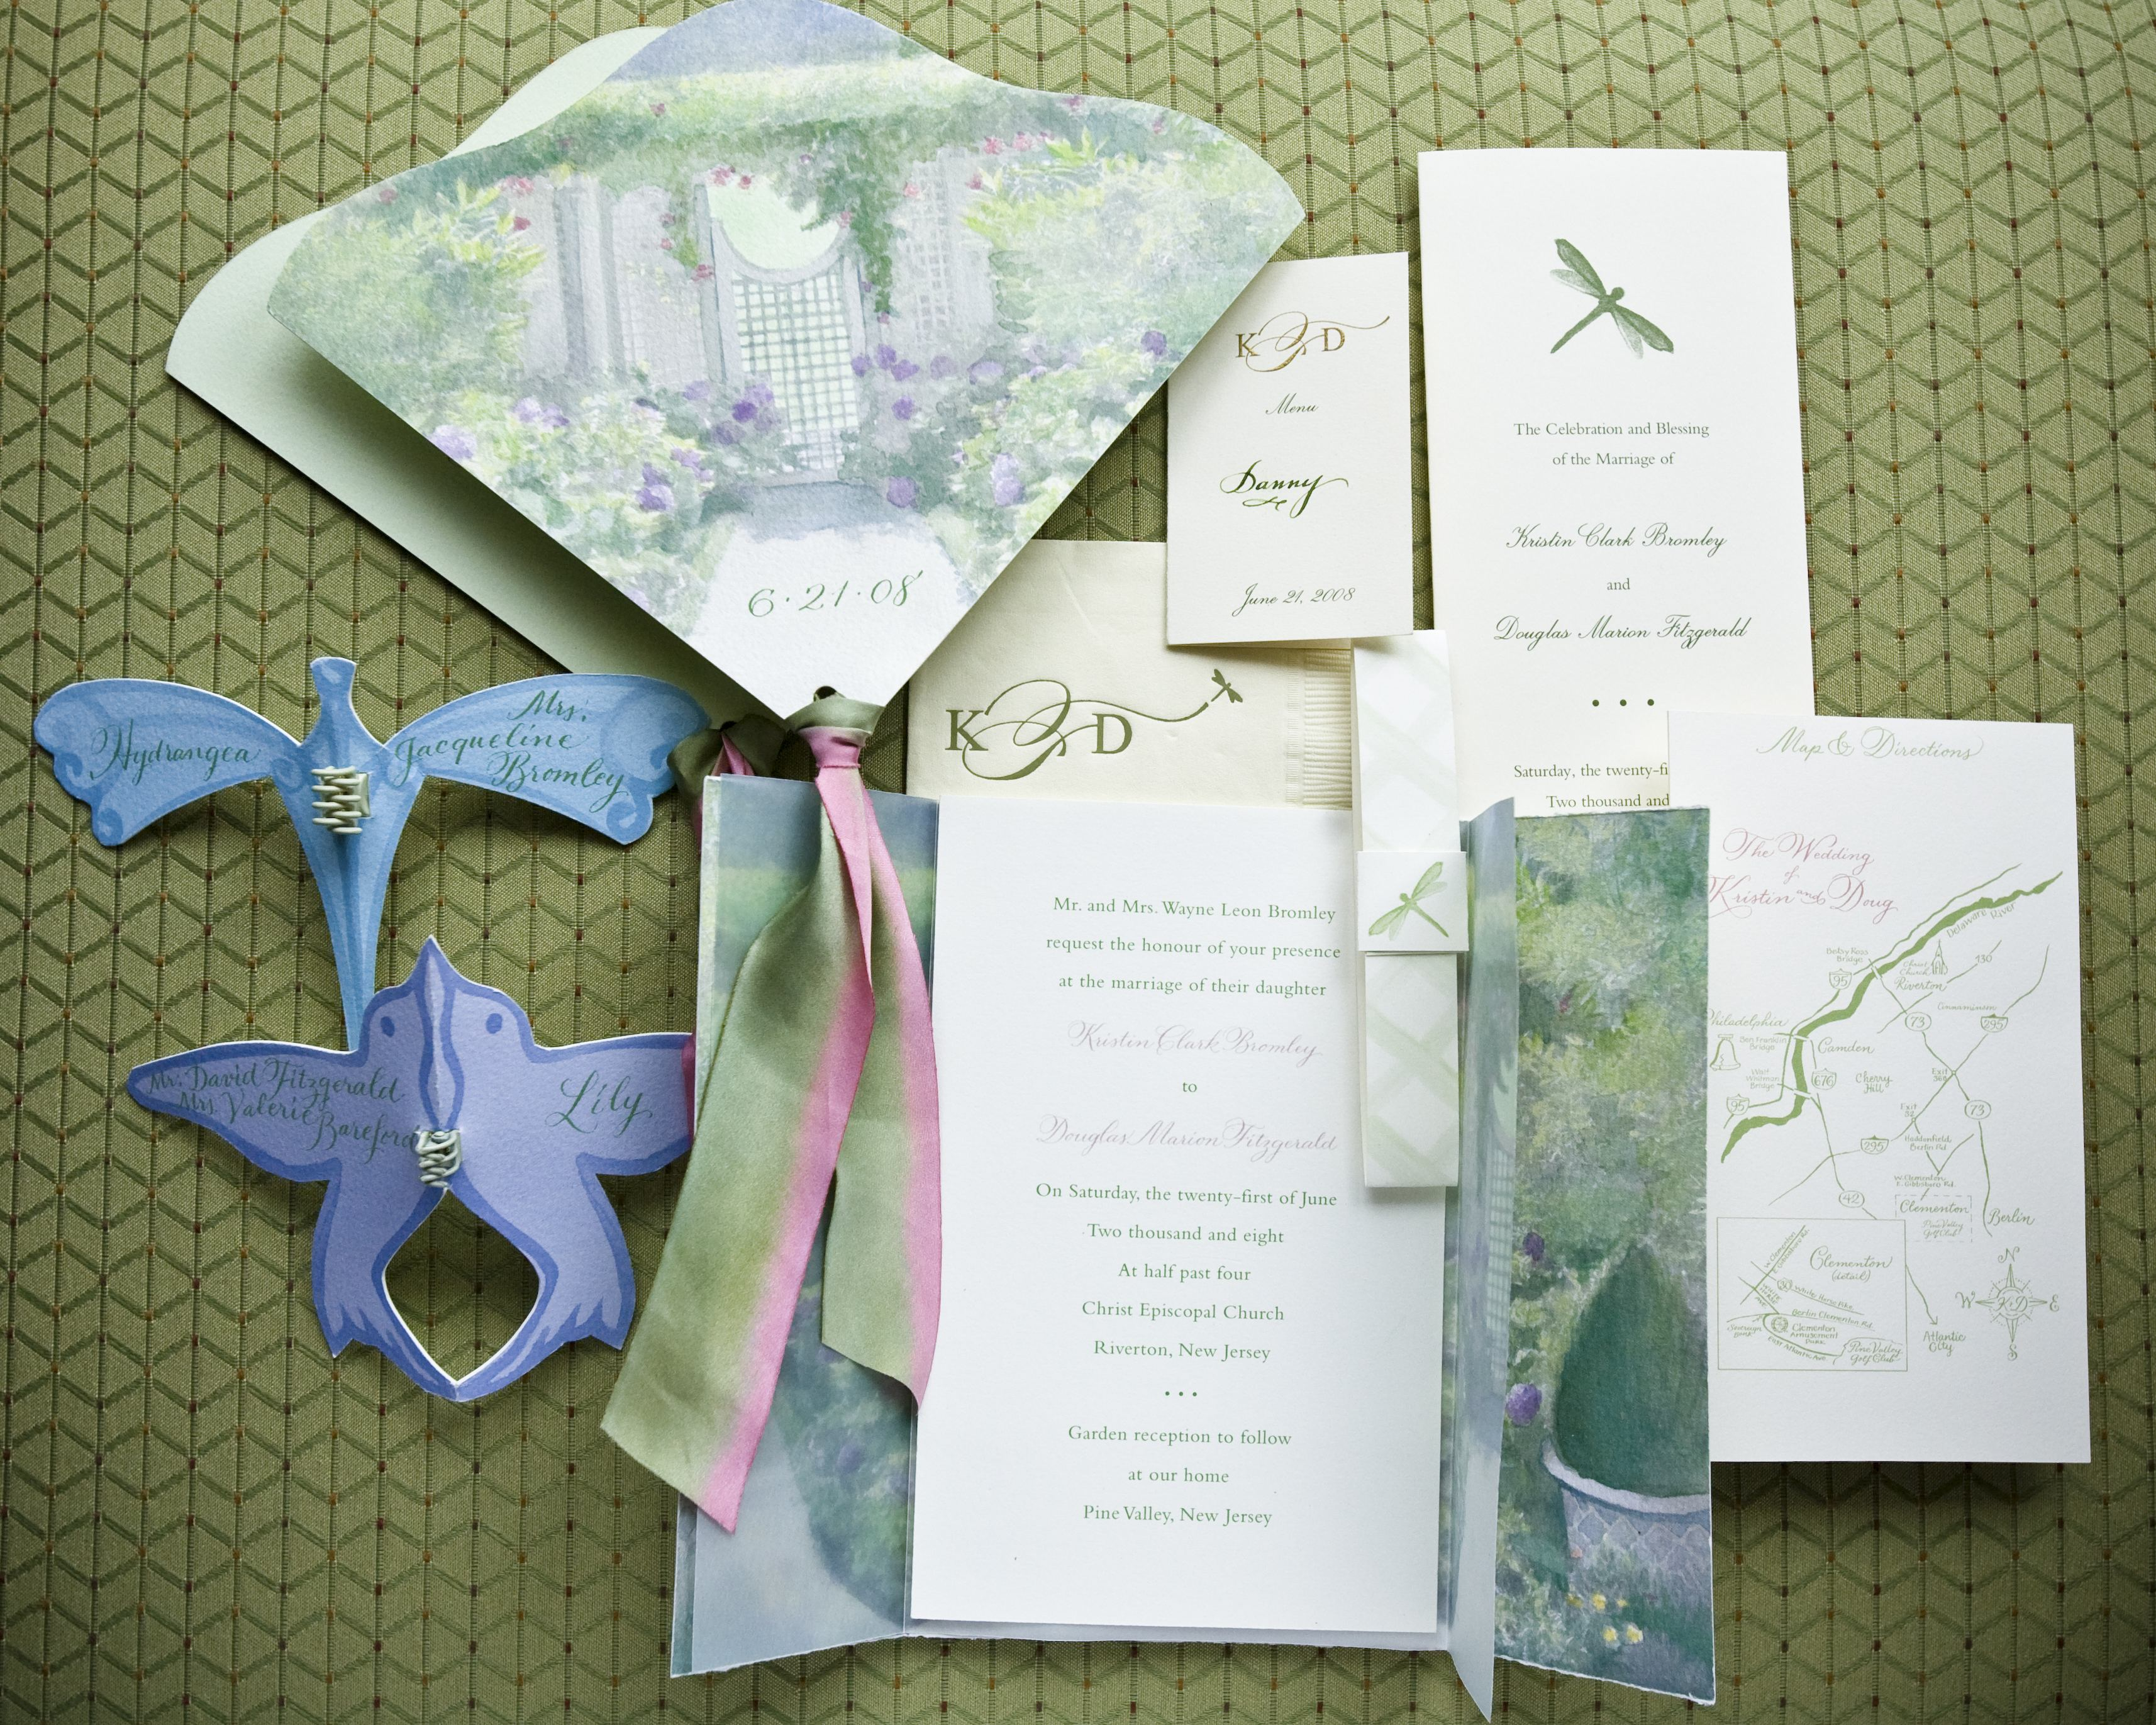 Wedding Invitations: 4 Ways to Make Yours Stand Out - Inside Weddings